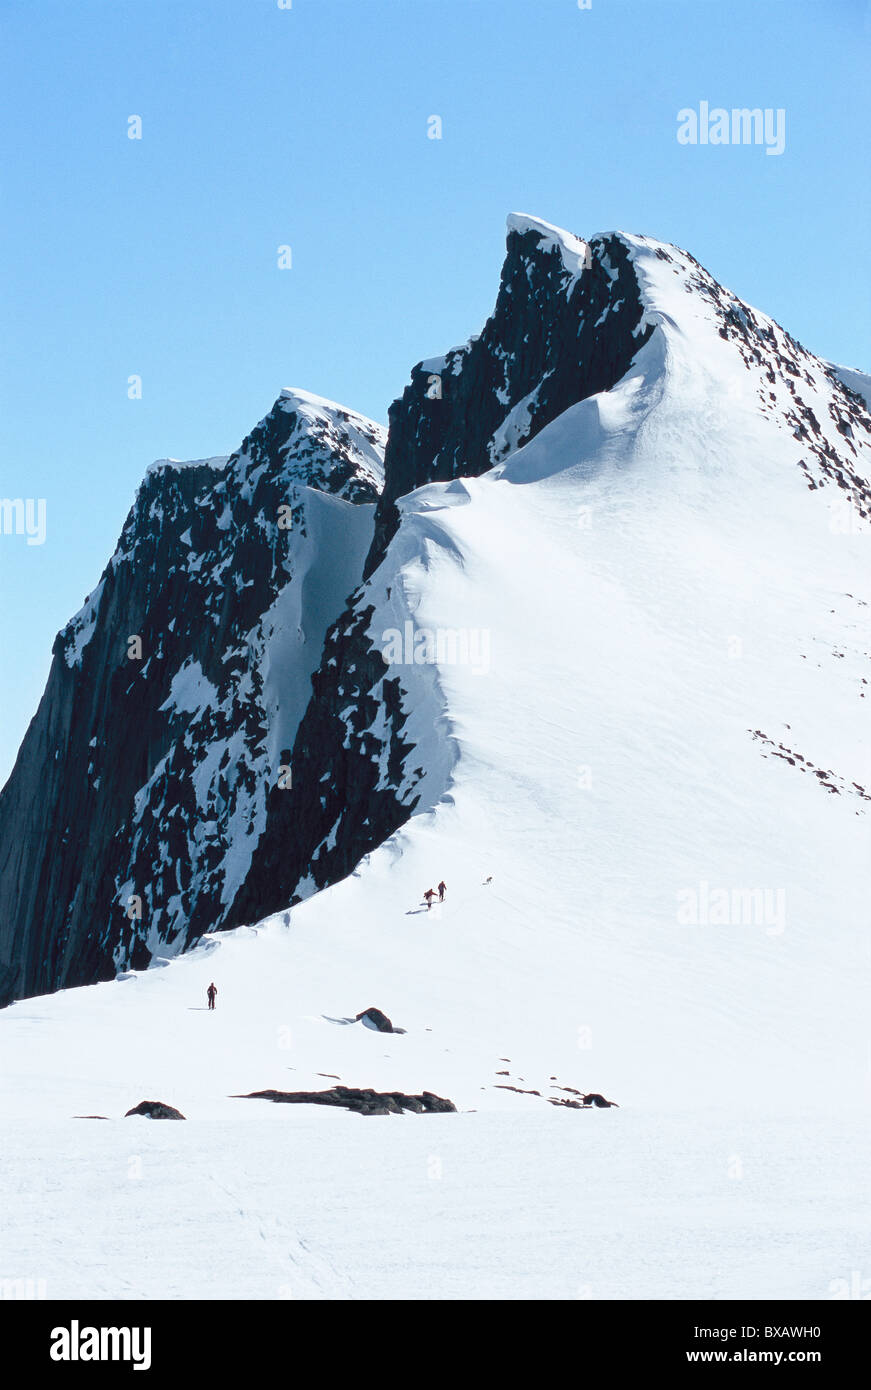 Distant view of climbers on mountain - Stock Image